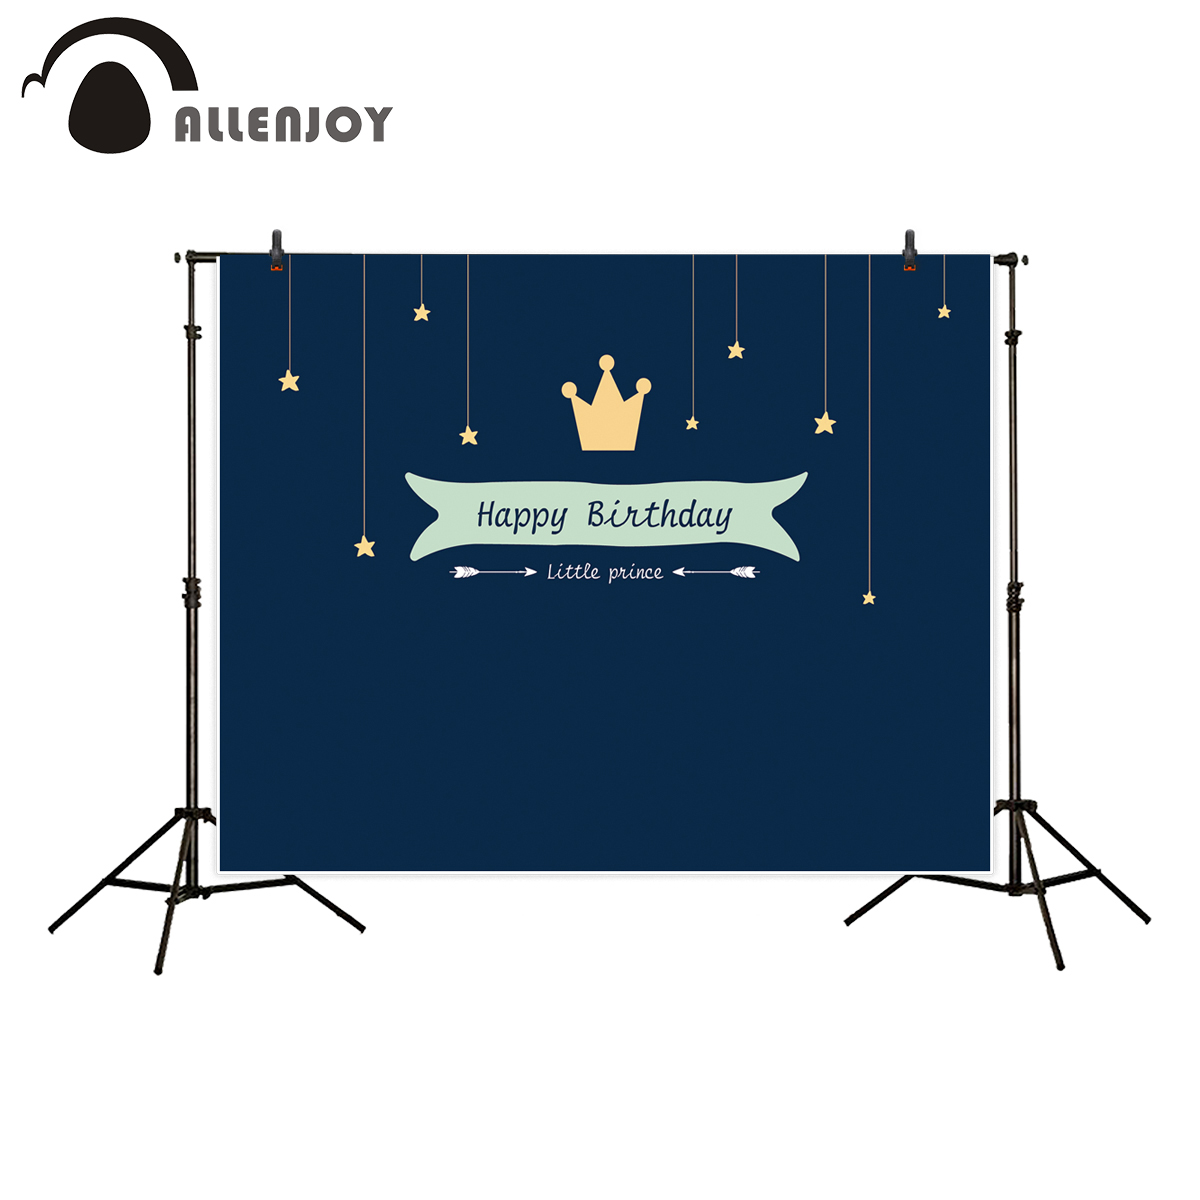 Allenjoy photography backdrop little prince theme birthday party crown stars background photocall photo studio photobooth